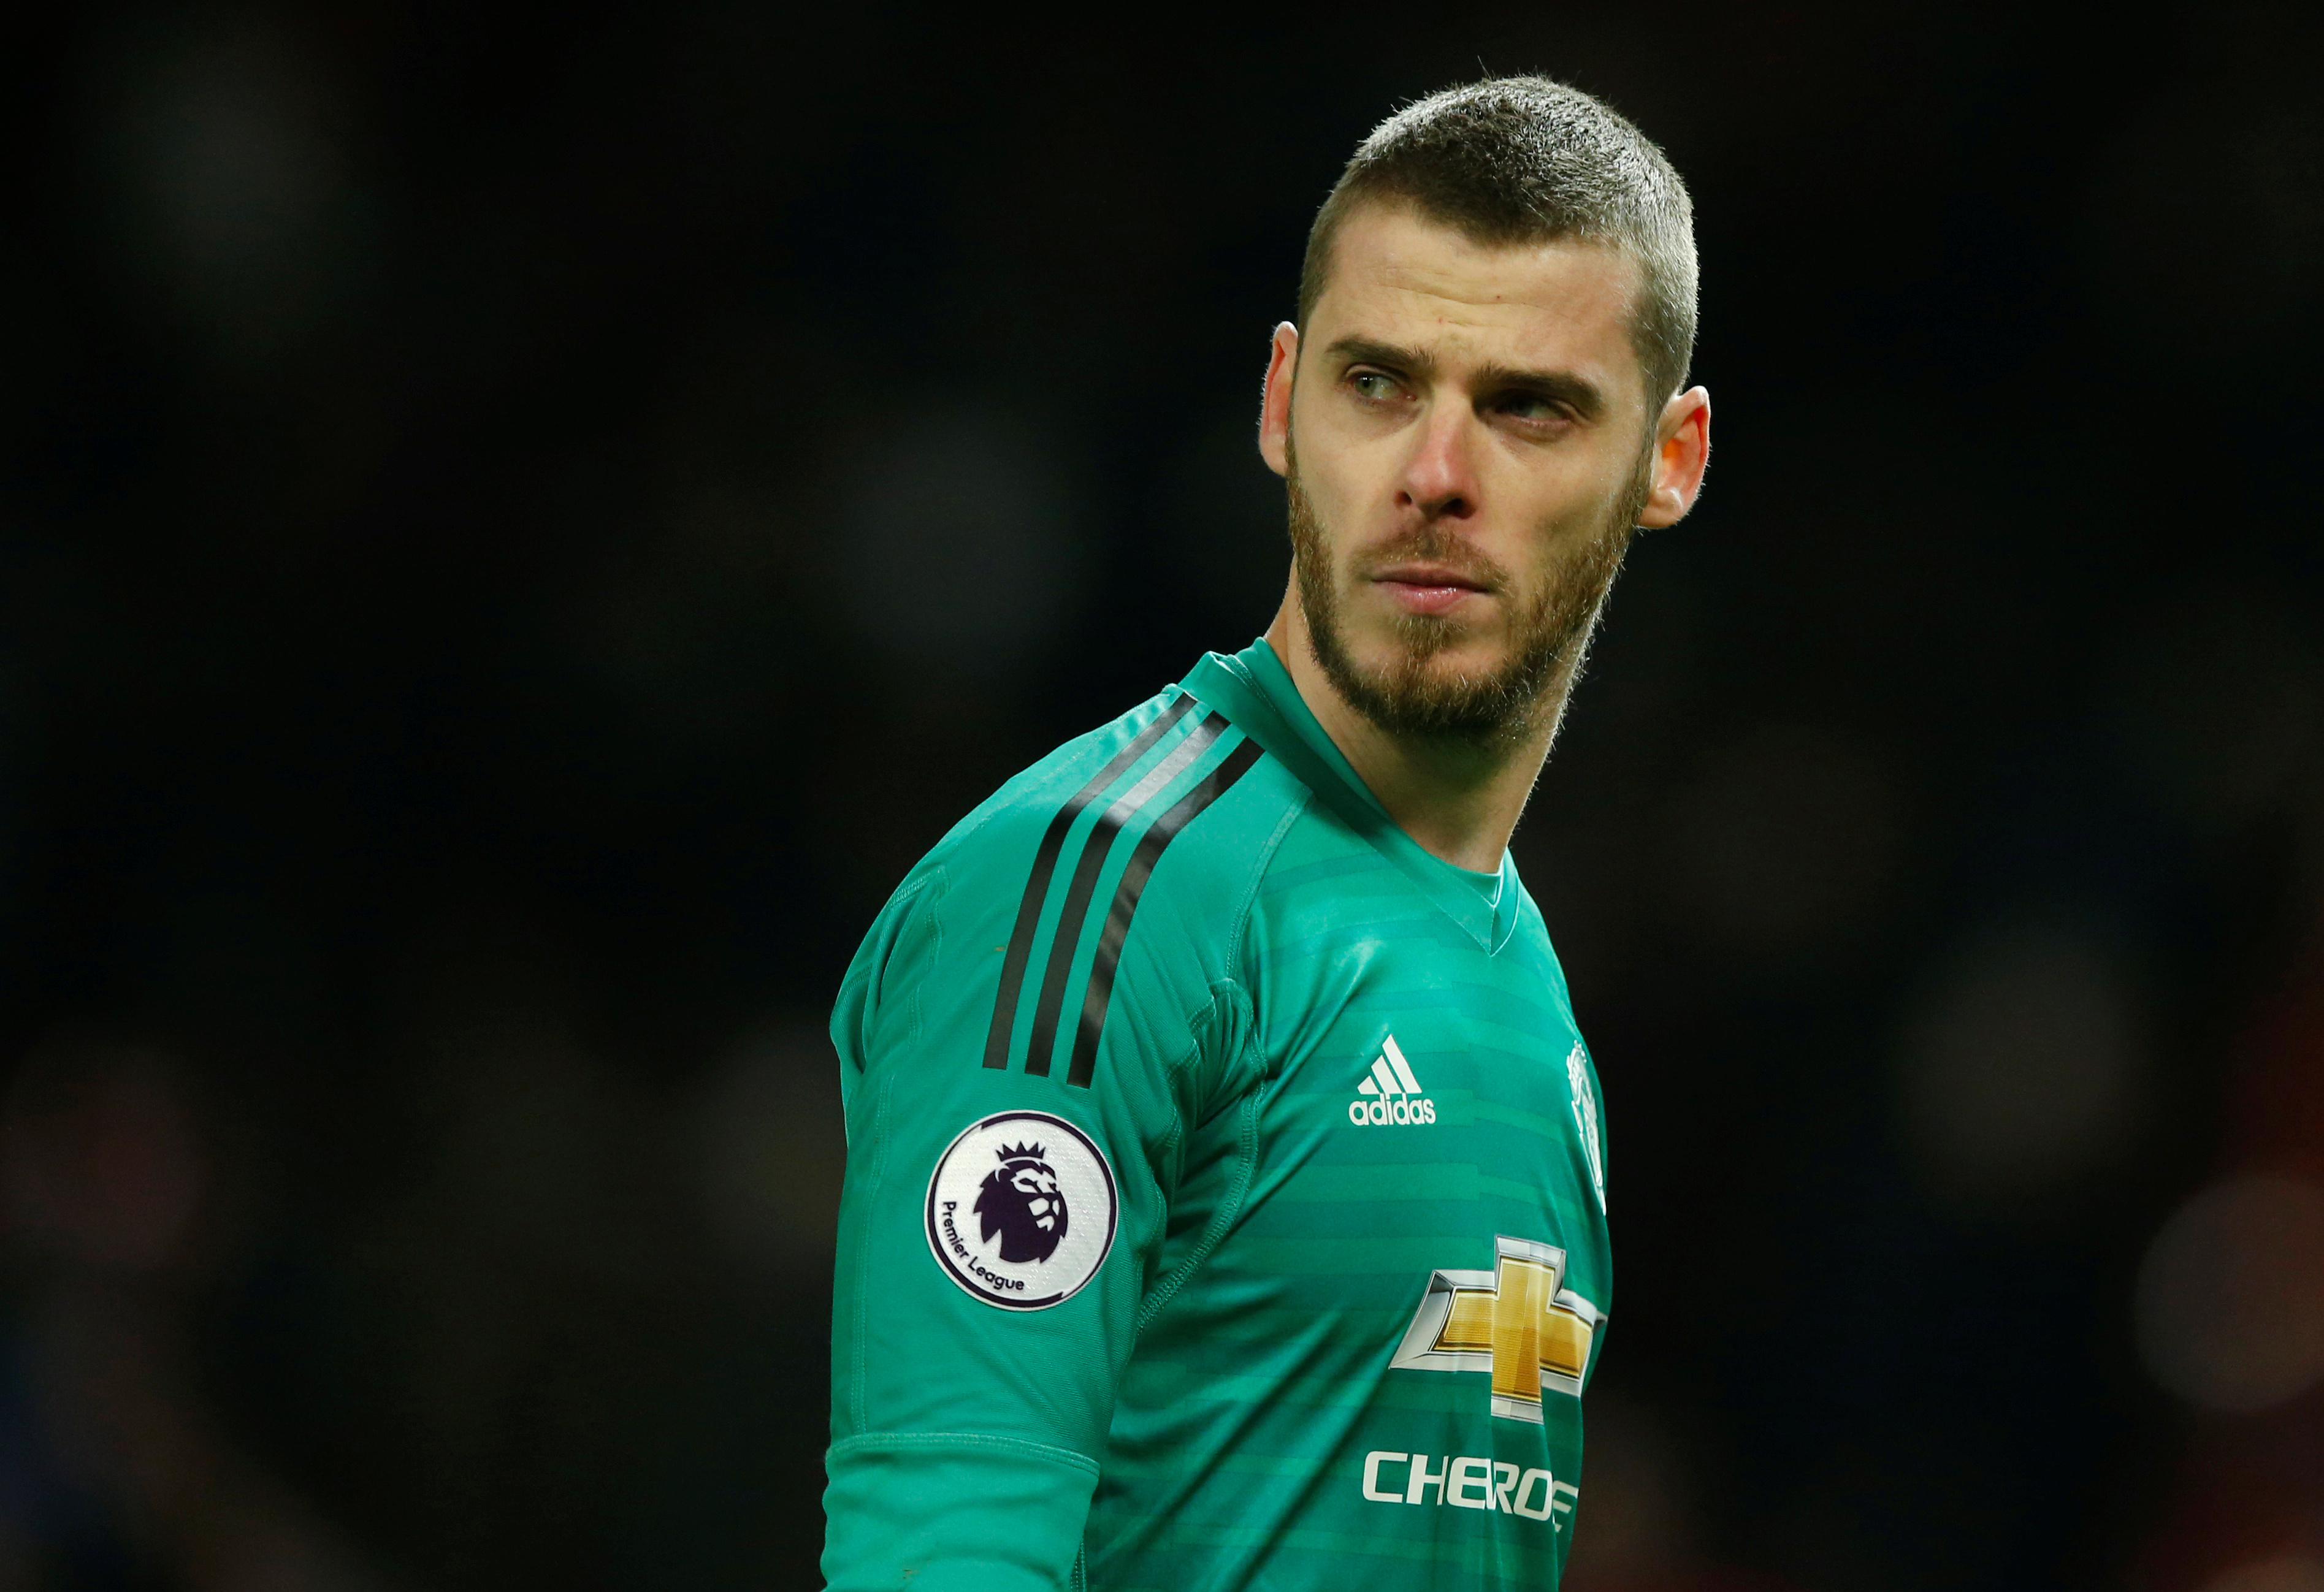 finest selection 750b0 cdc51 World's best keeper' De Gea wants to stay says Mourinho ...